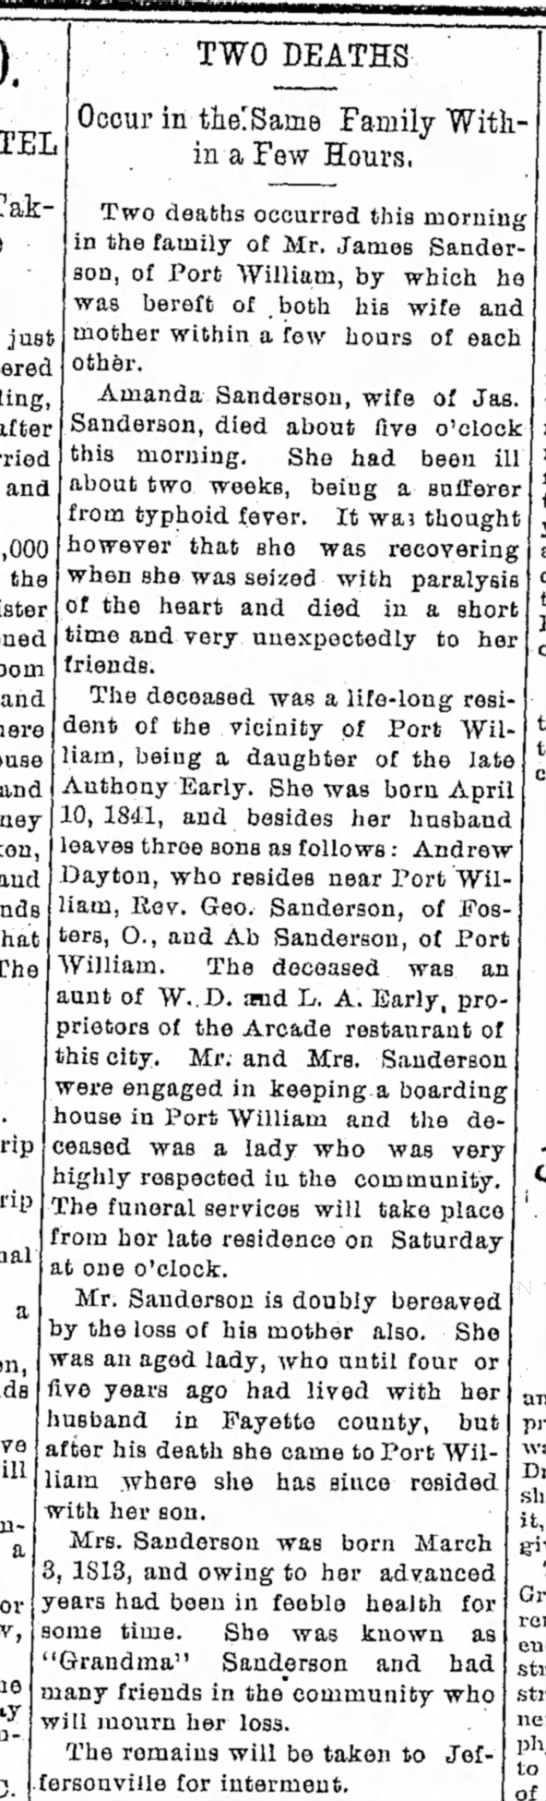 Sanderson death, Port William, OH - • Taking TWO DEATHS Occur in tJielSarne Family...